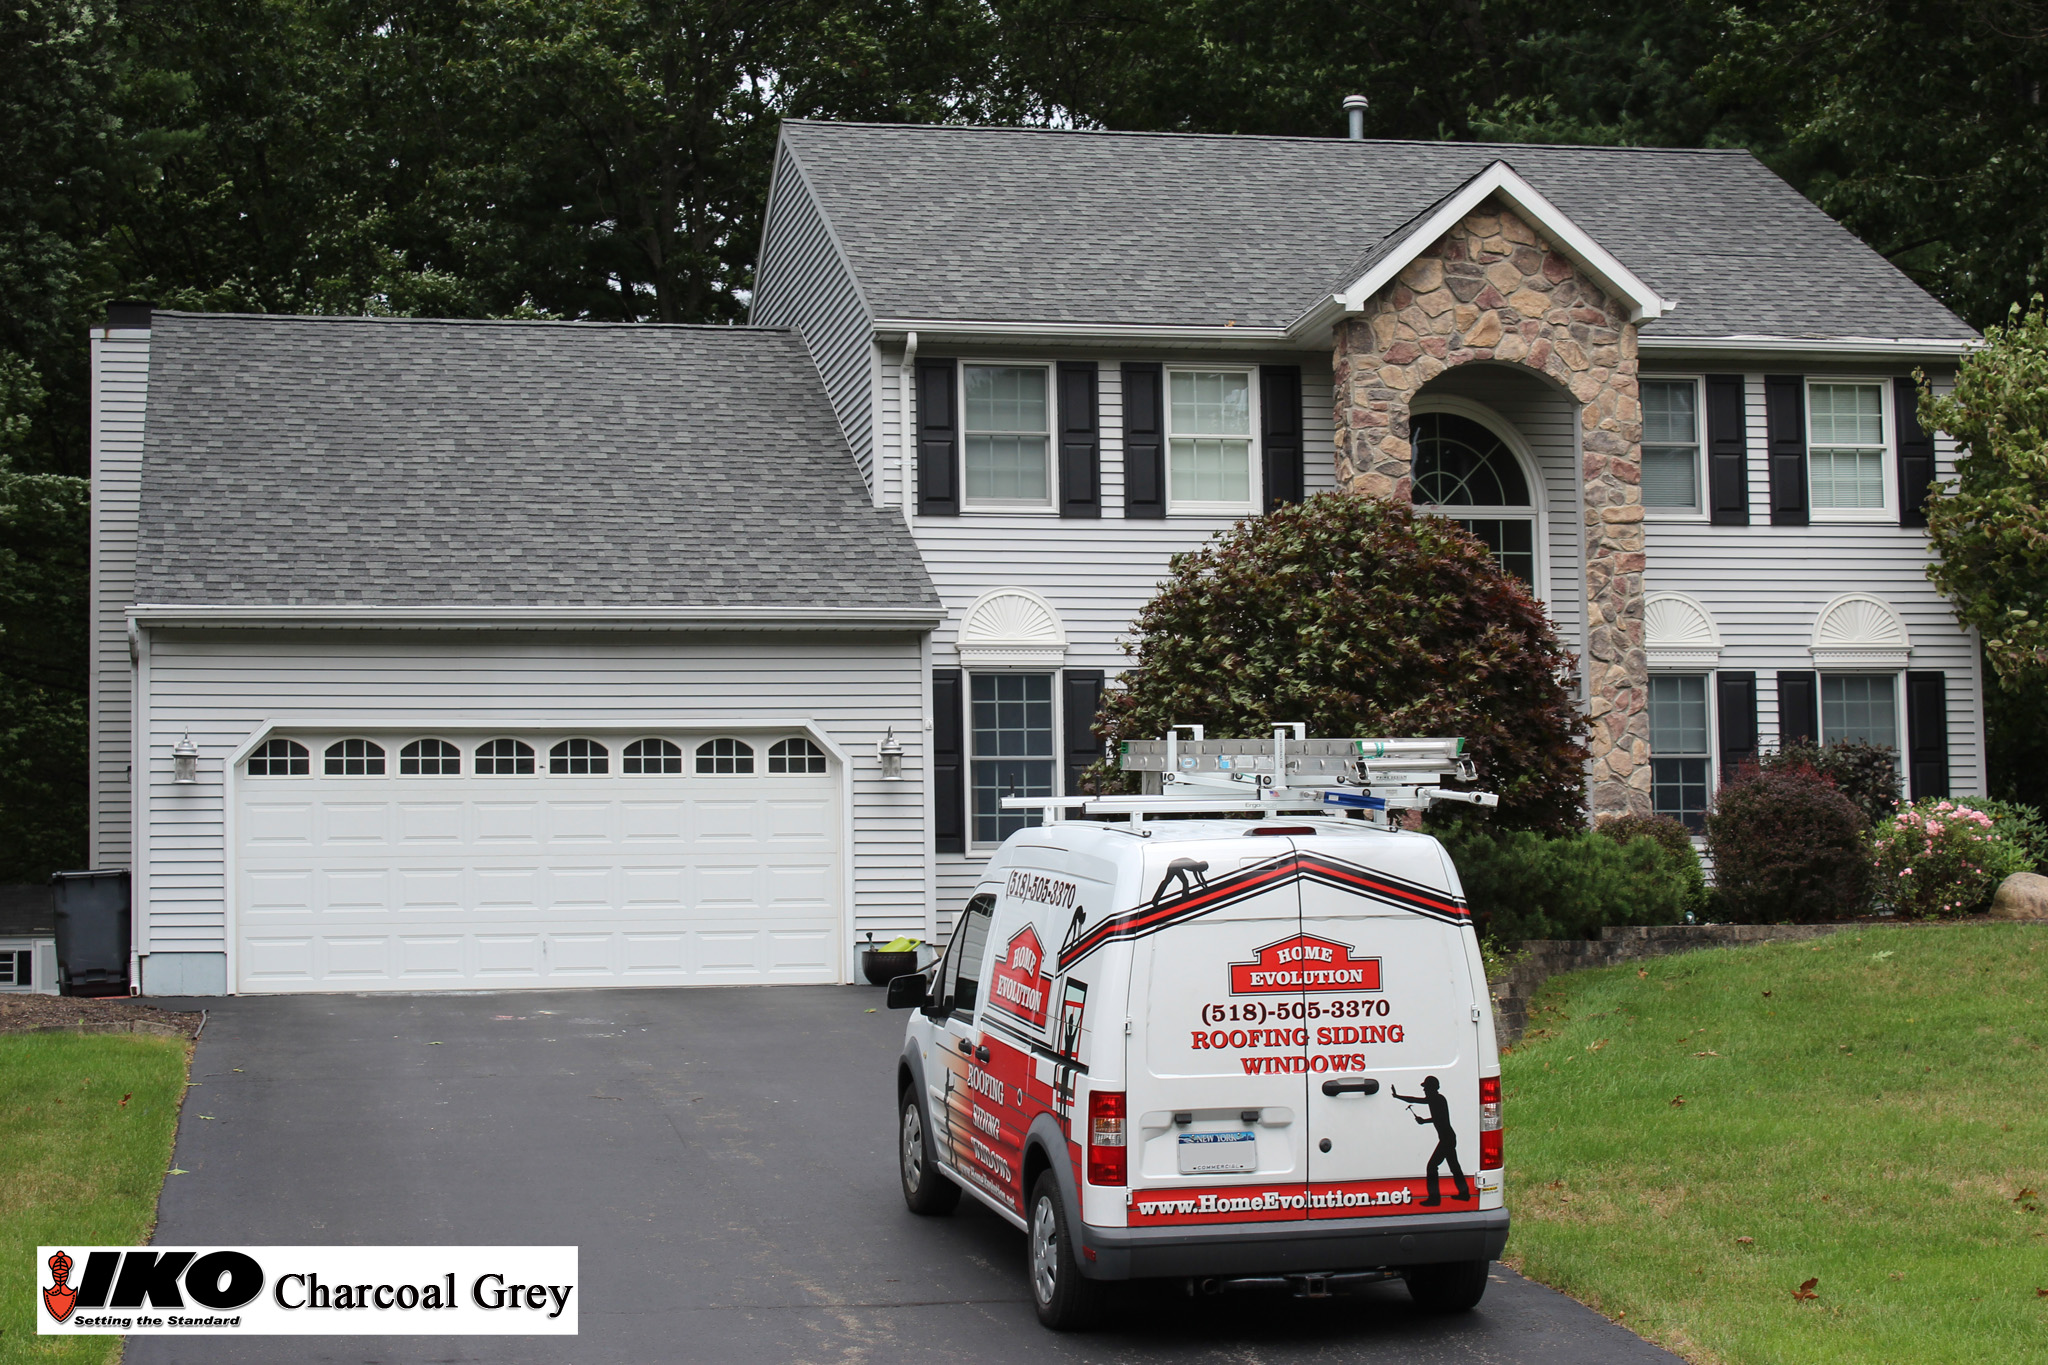 Schenectedy Ny Roofing Siding And Window Replacment